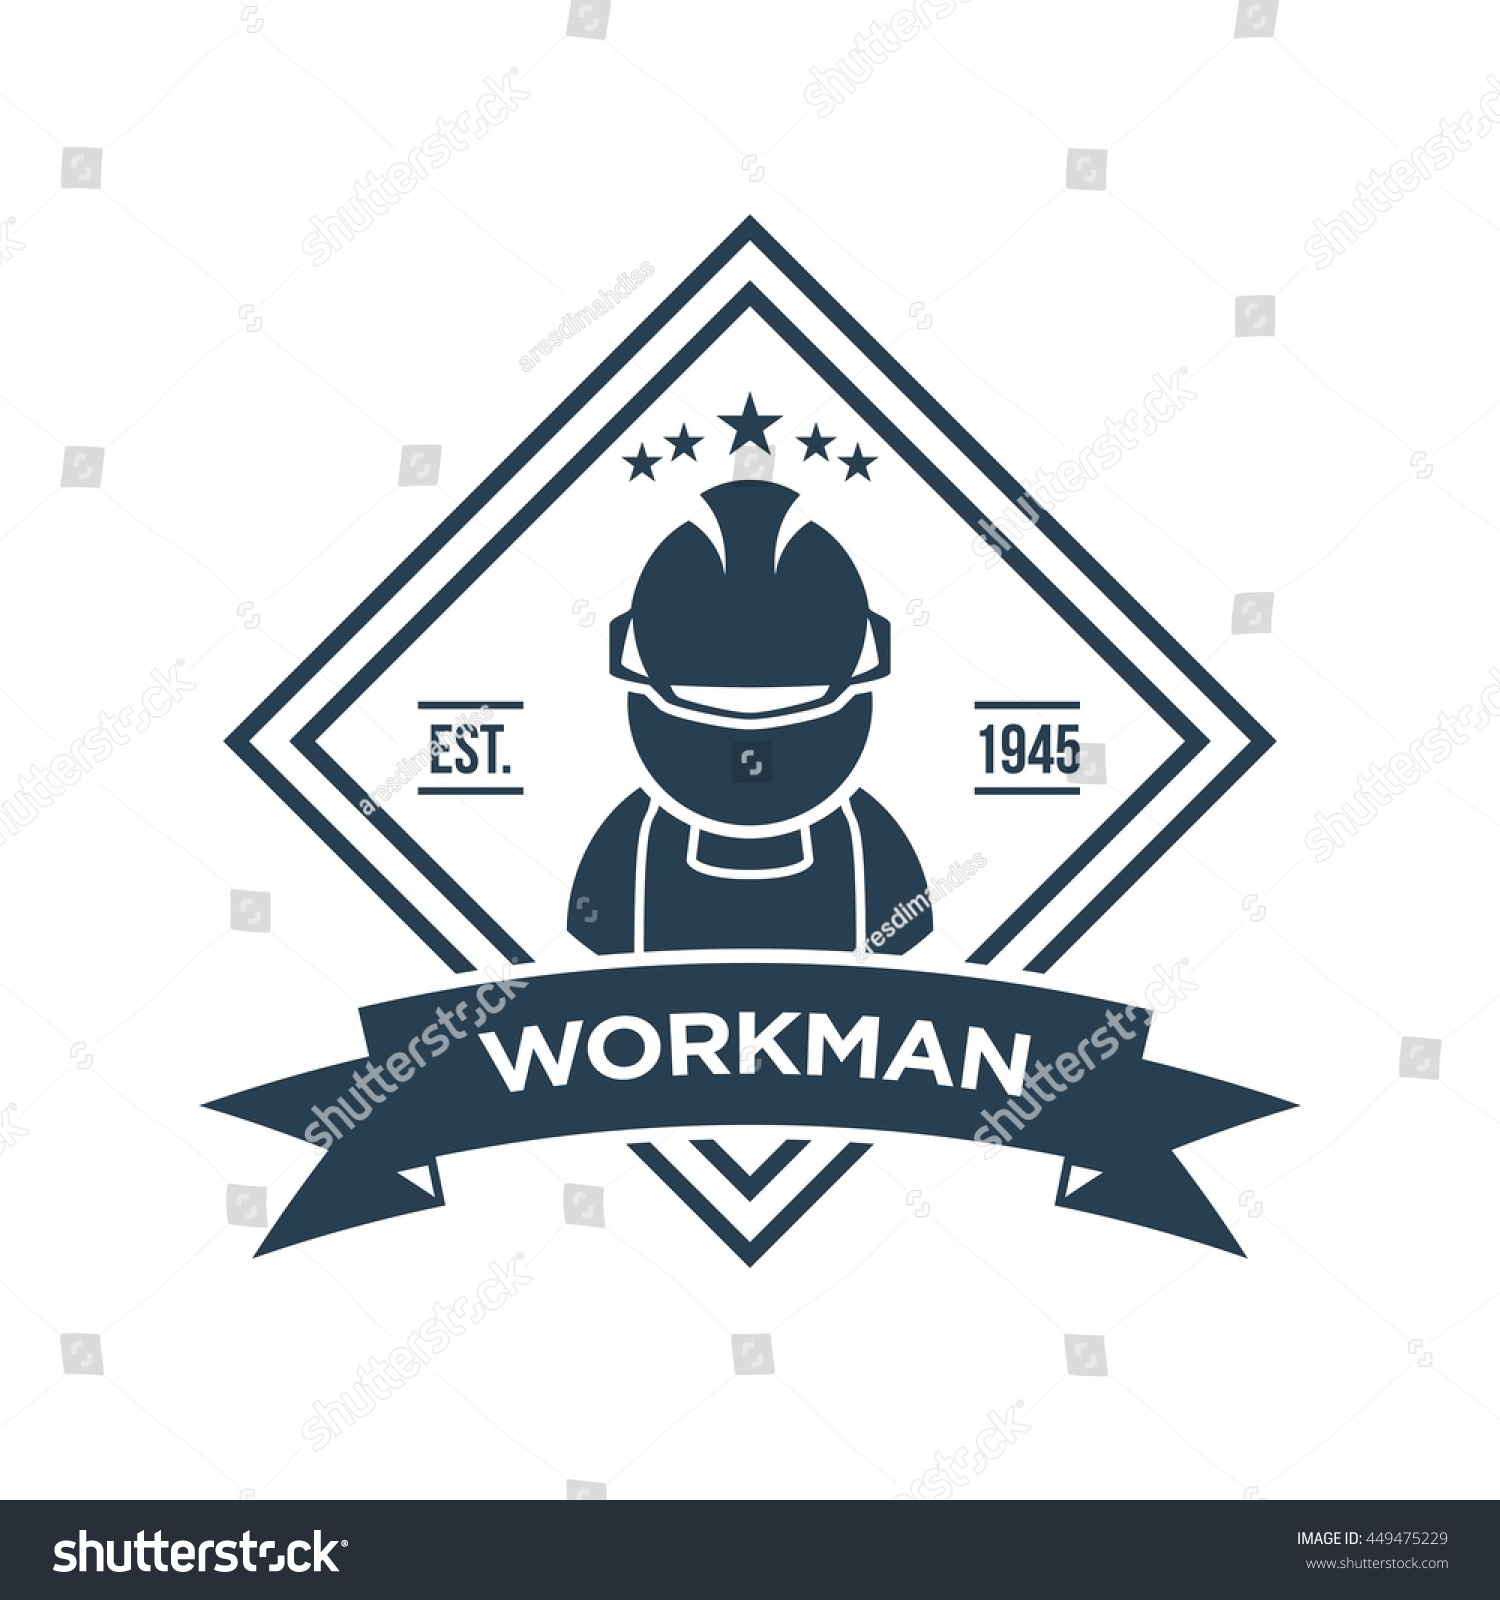 Working man construction logo template stock vector 449475229 working man for construction logo template biocorpaavc Images